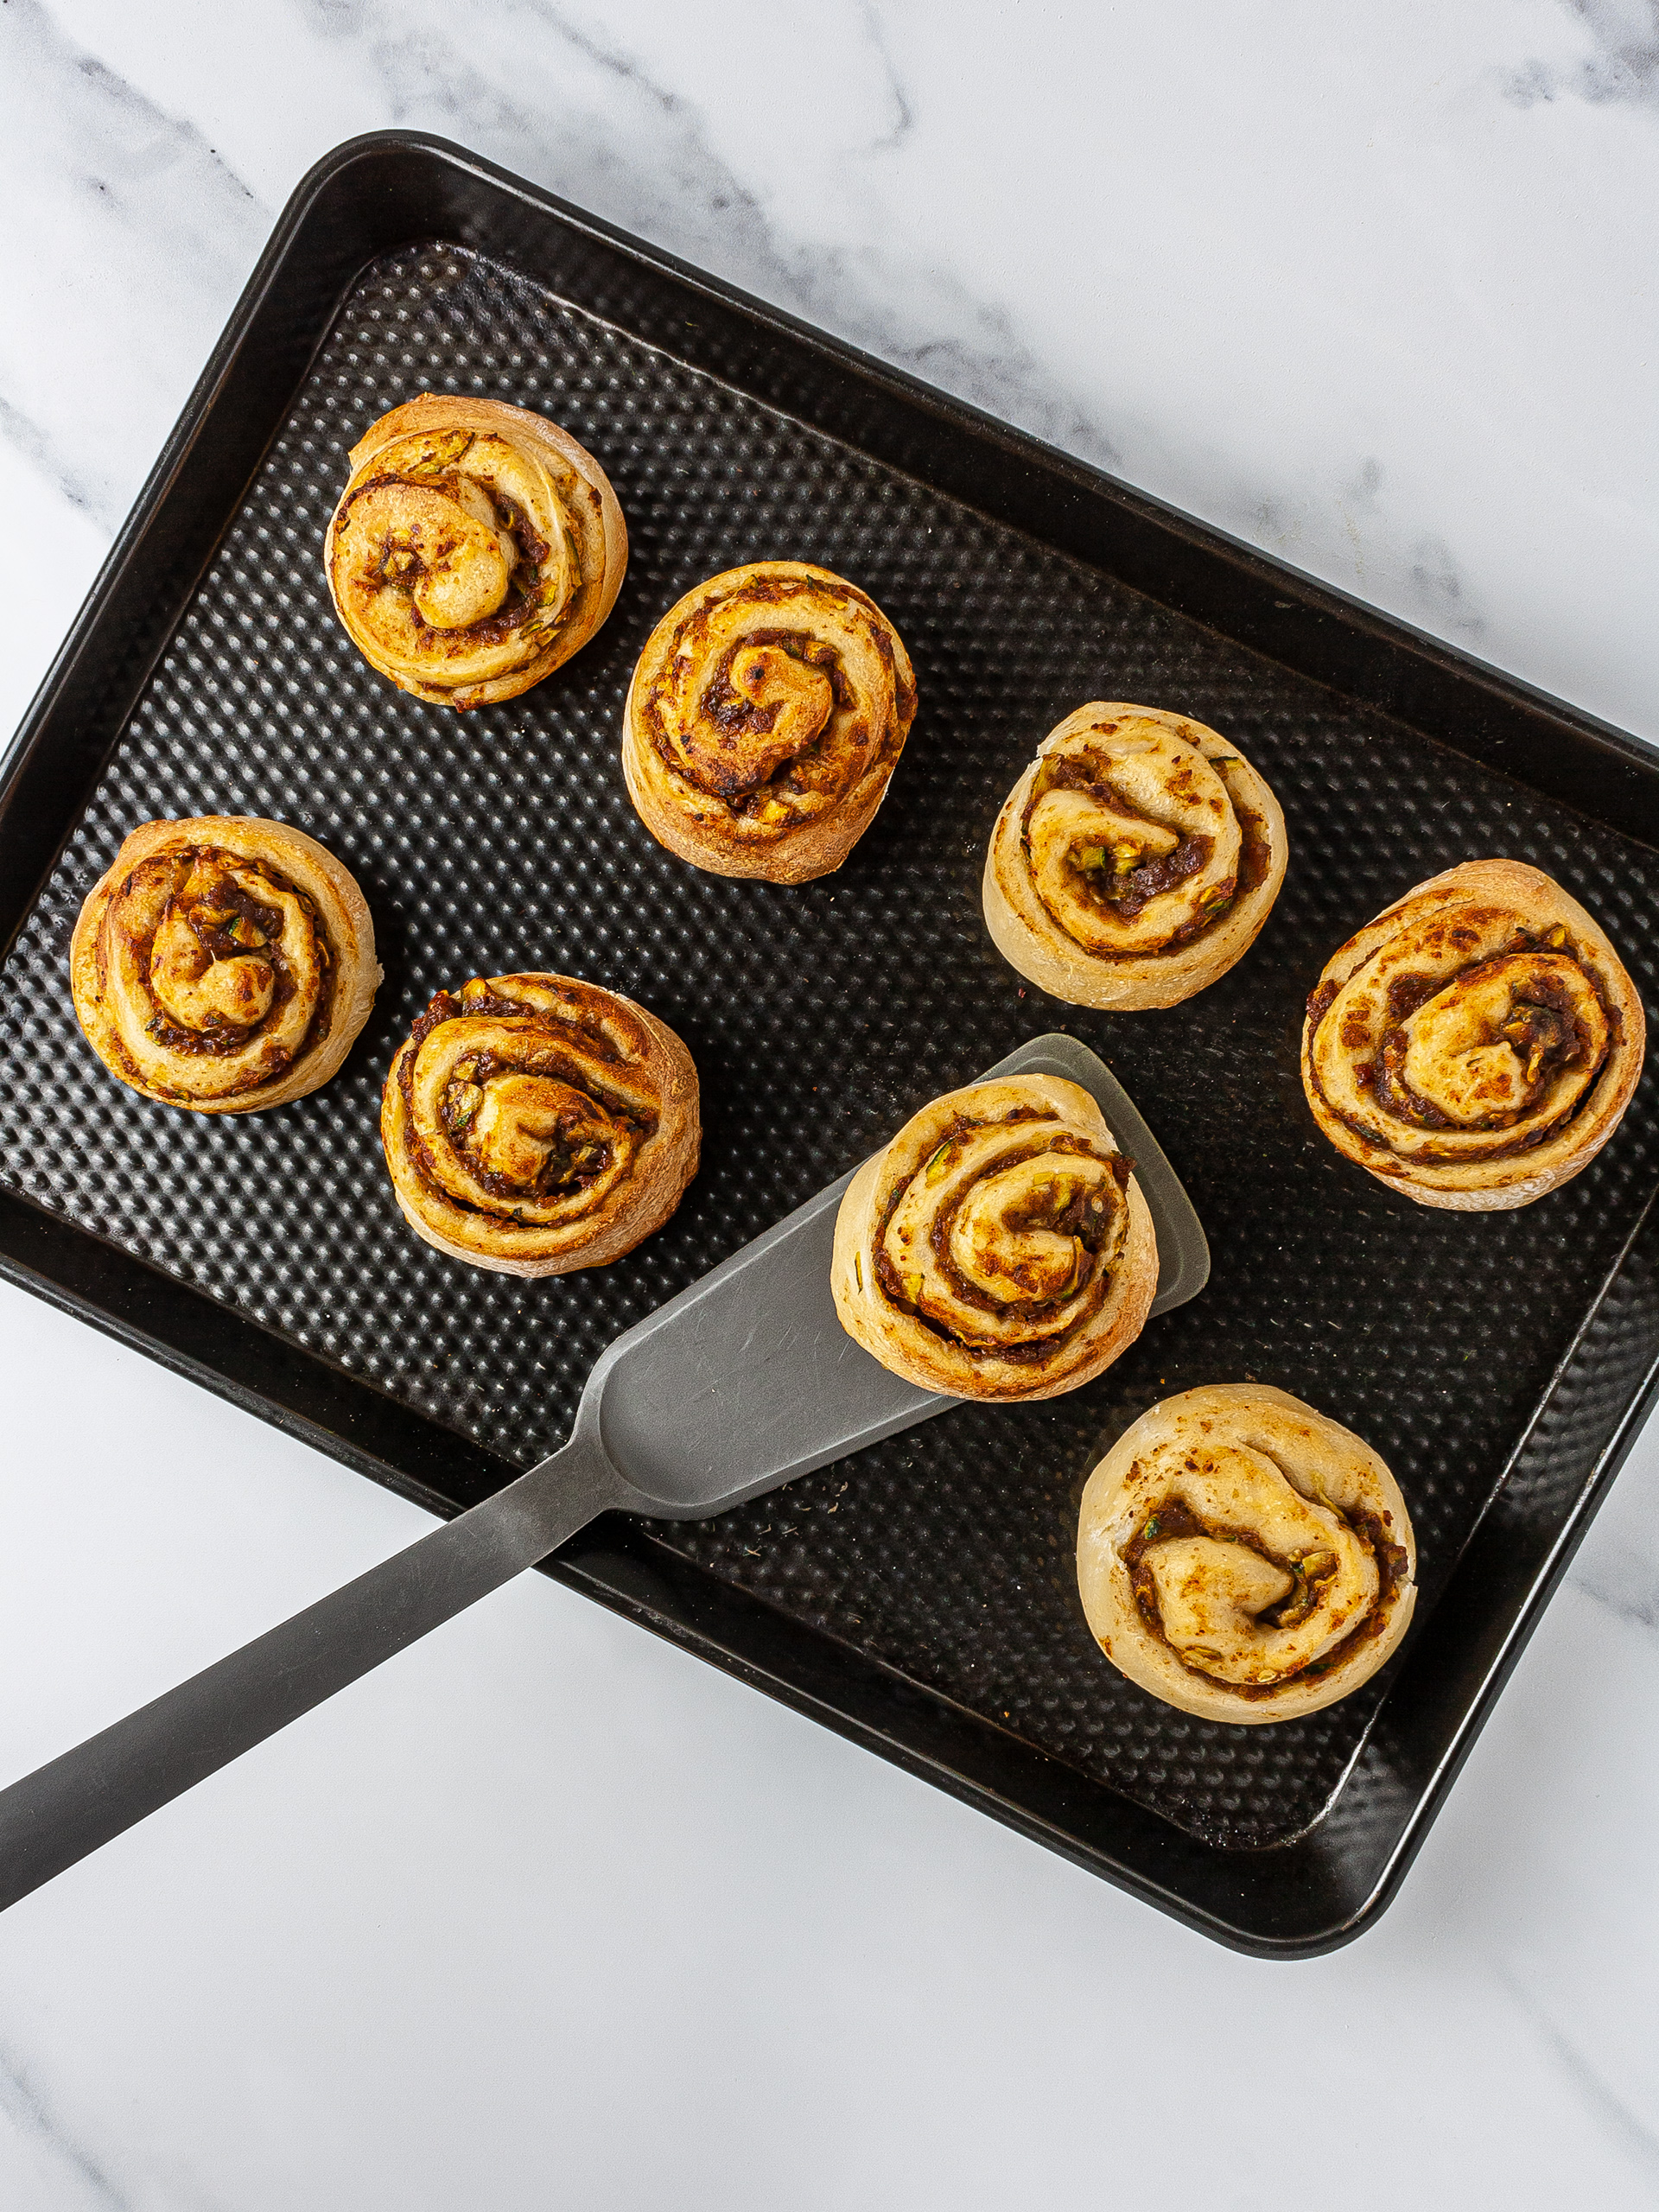 Baked zucchini cinnamon buns on tray.